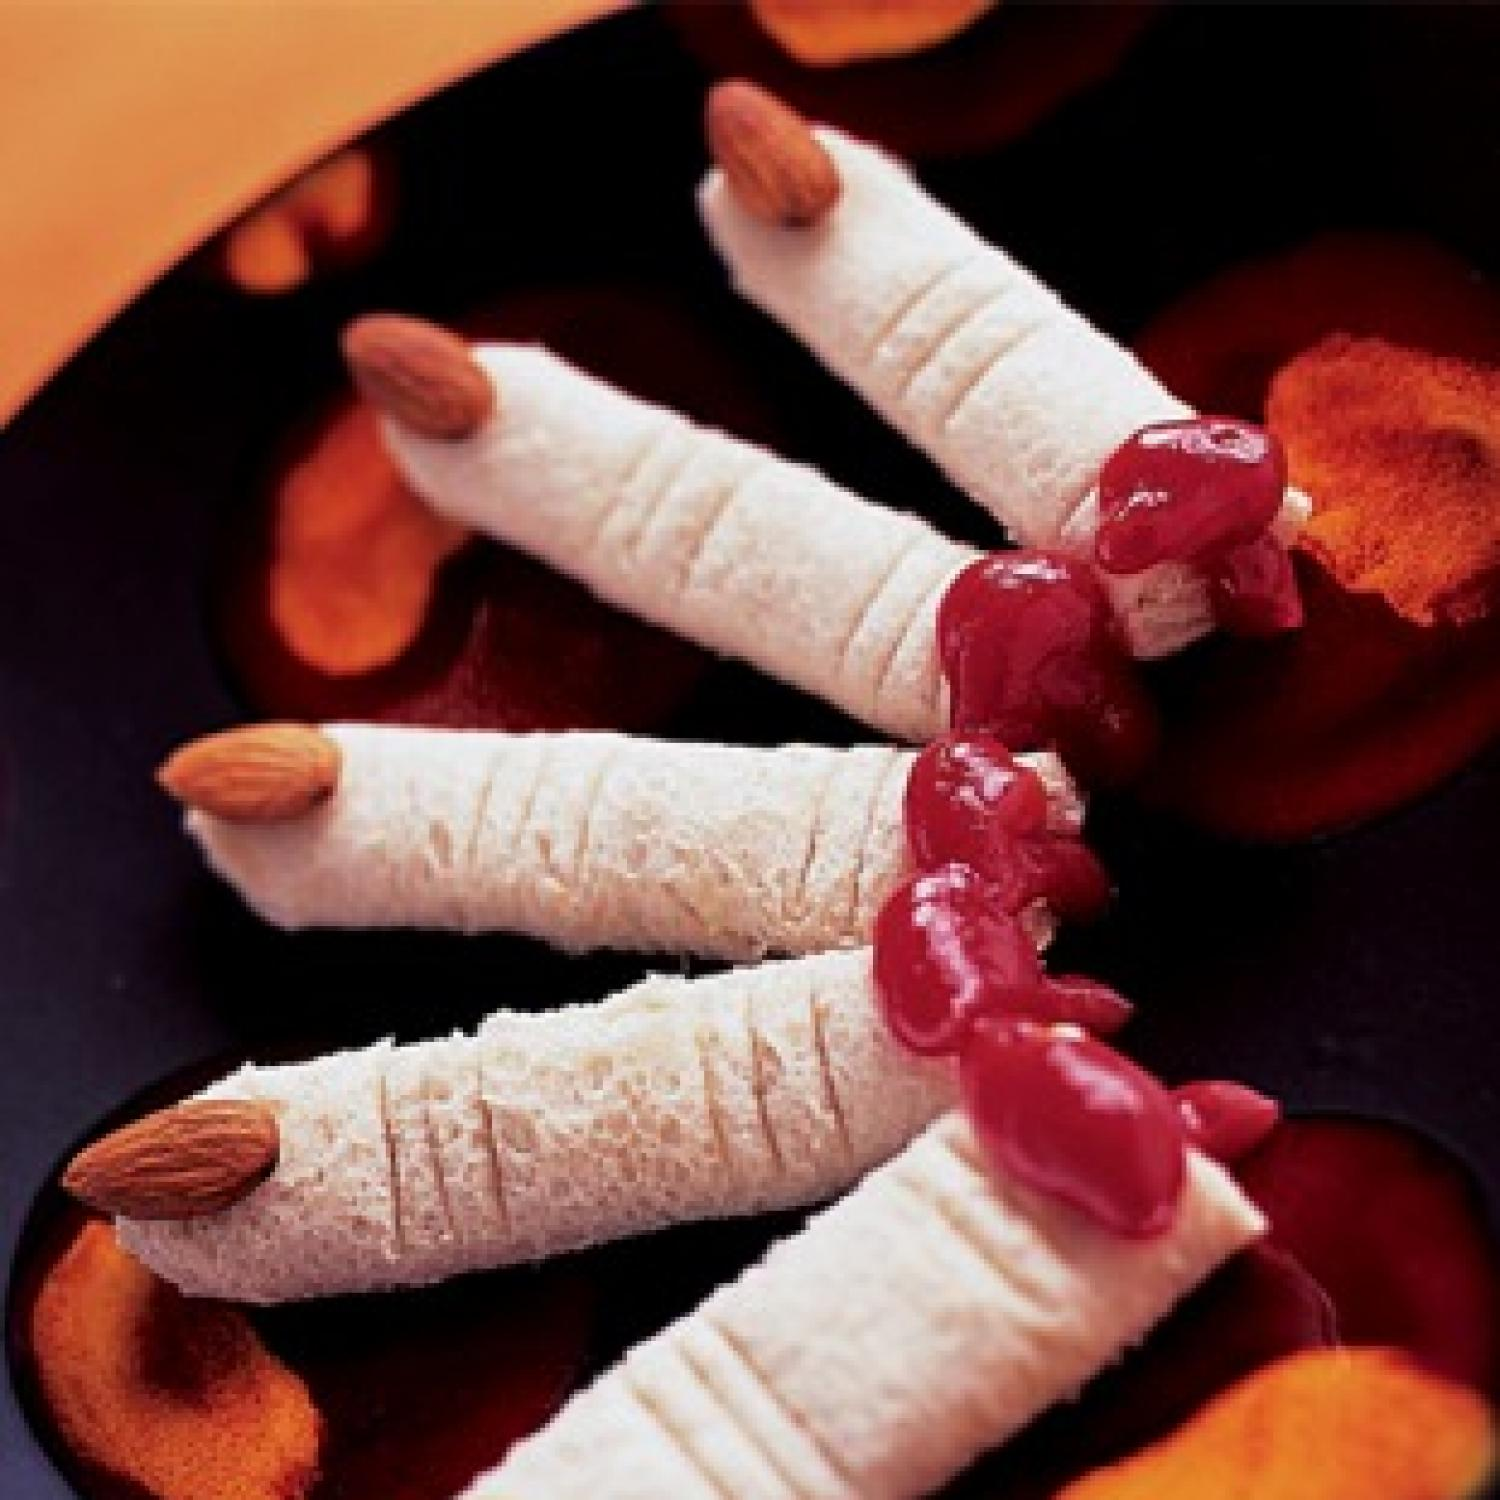 18 Gross Halloween Party Food Ideas And Recipes That Are